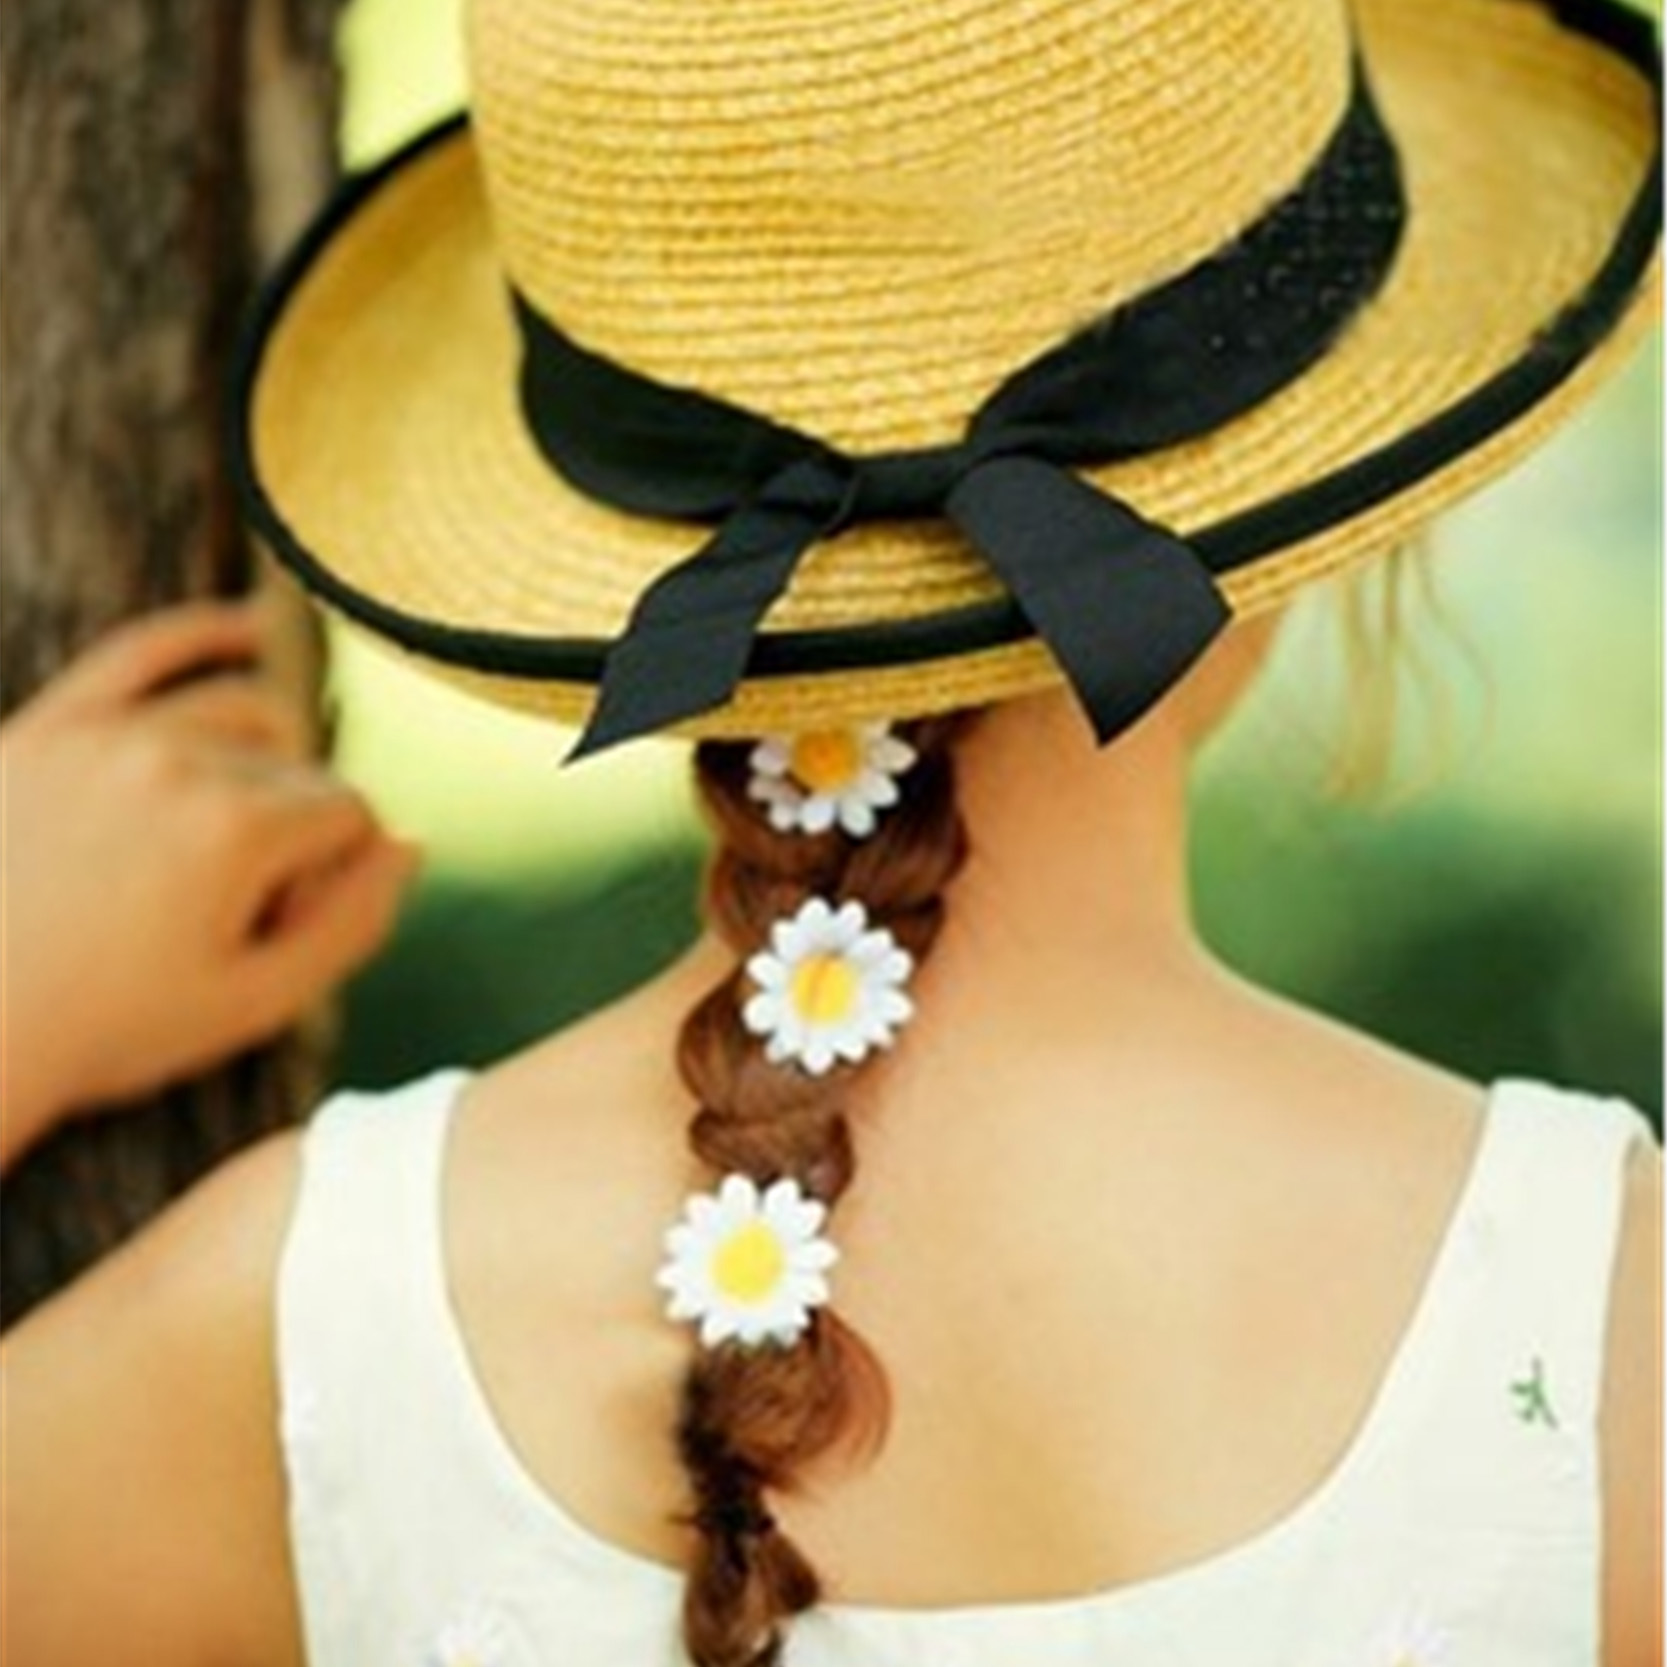 2016 Summer Style Daisy Hair Clips Metal Clip With Flowers Lady Fashion Style Hairpin Korean Style For Girls Hair Accessories(China (Mainland))